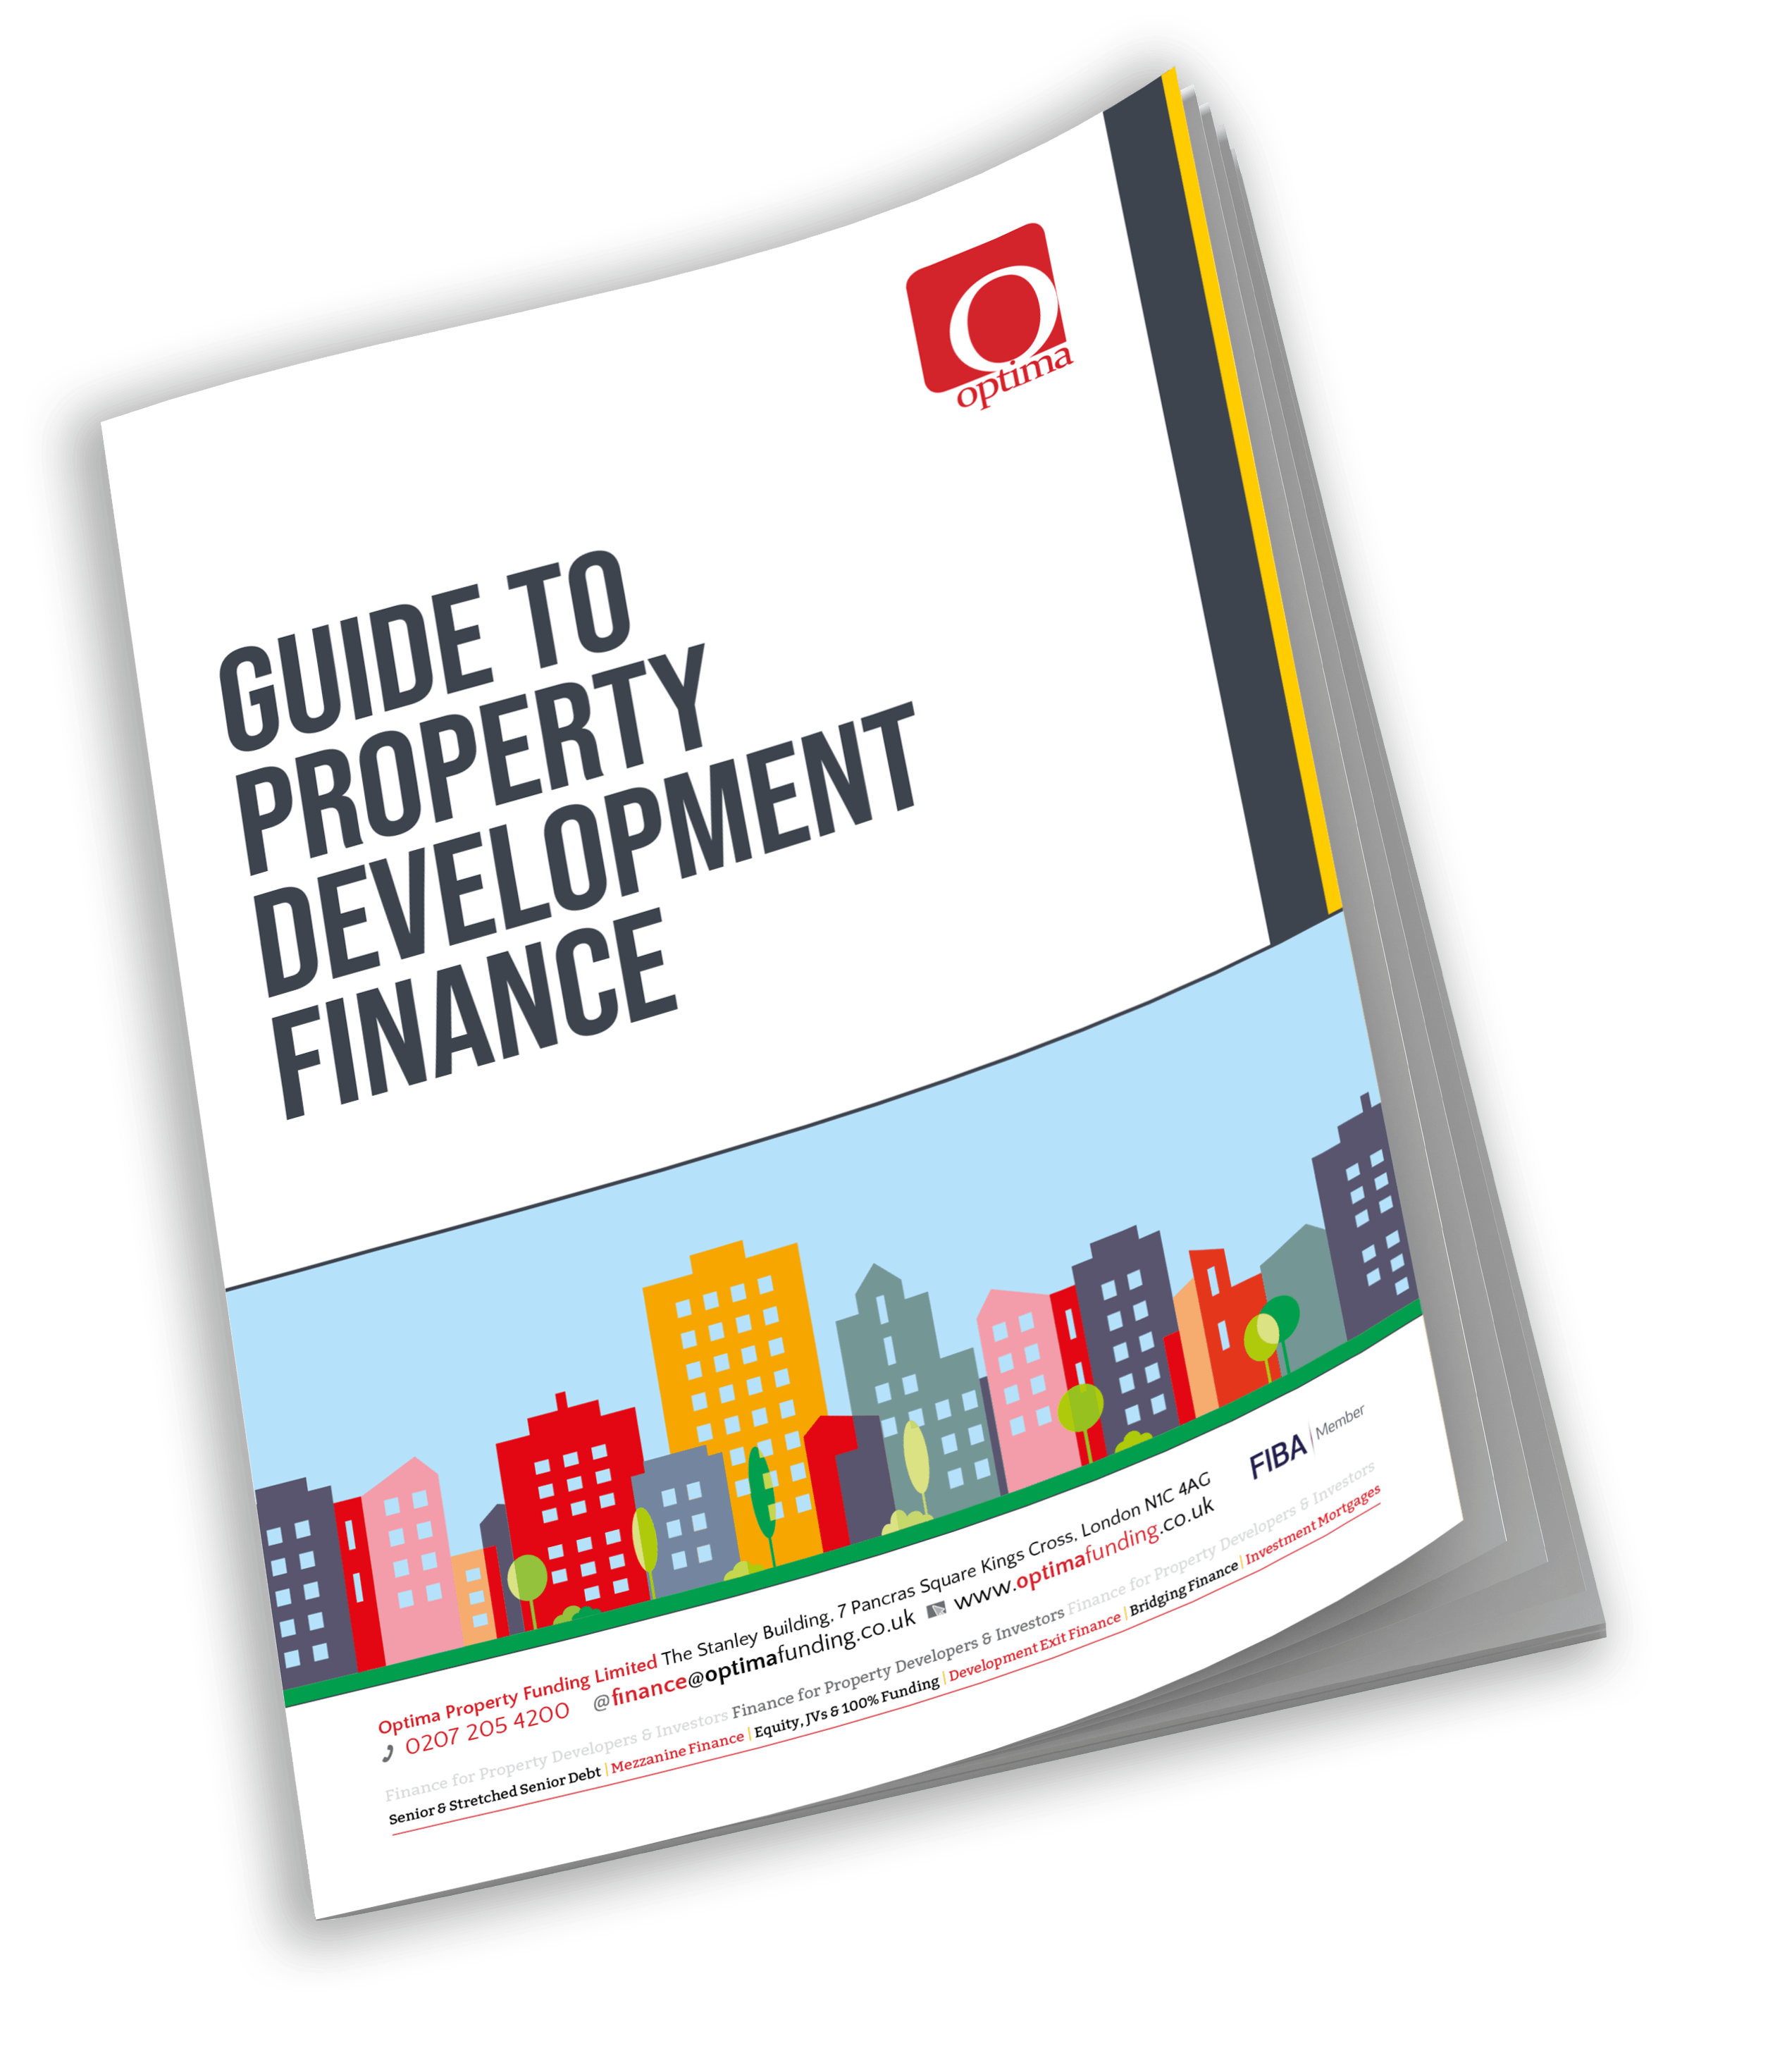 Guide to Property Development Finance